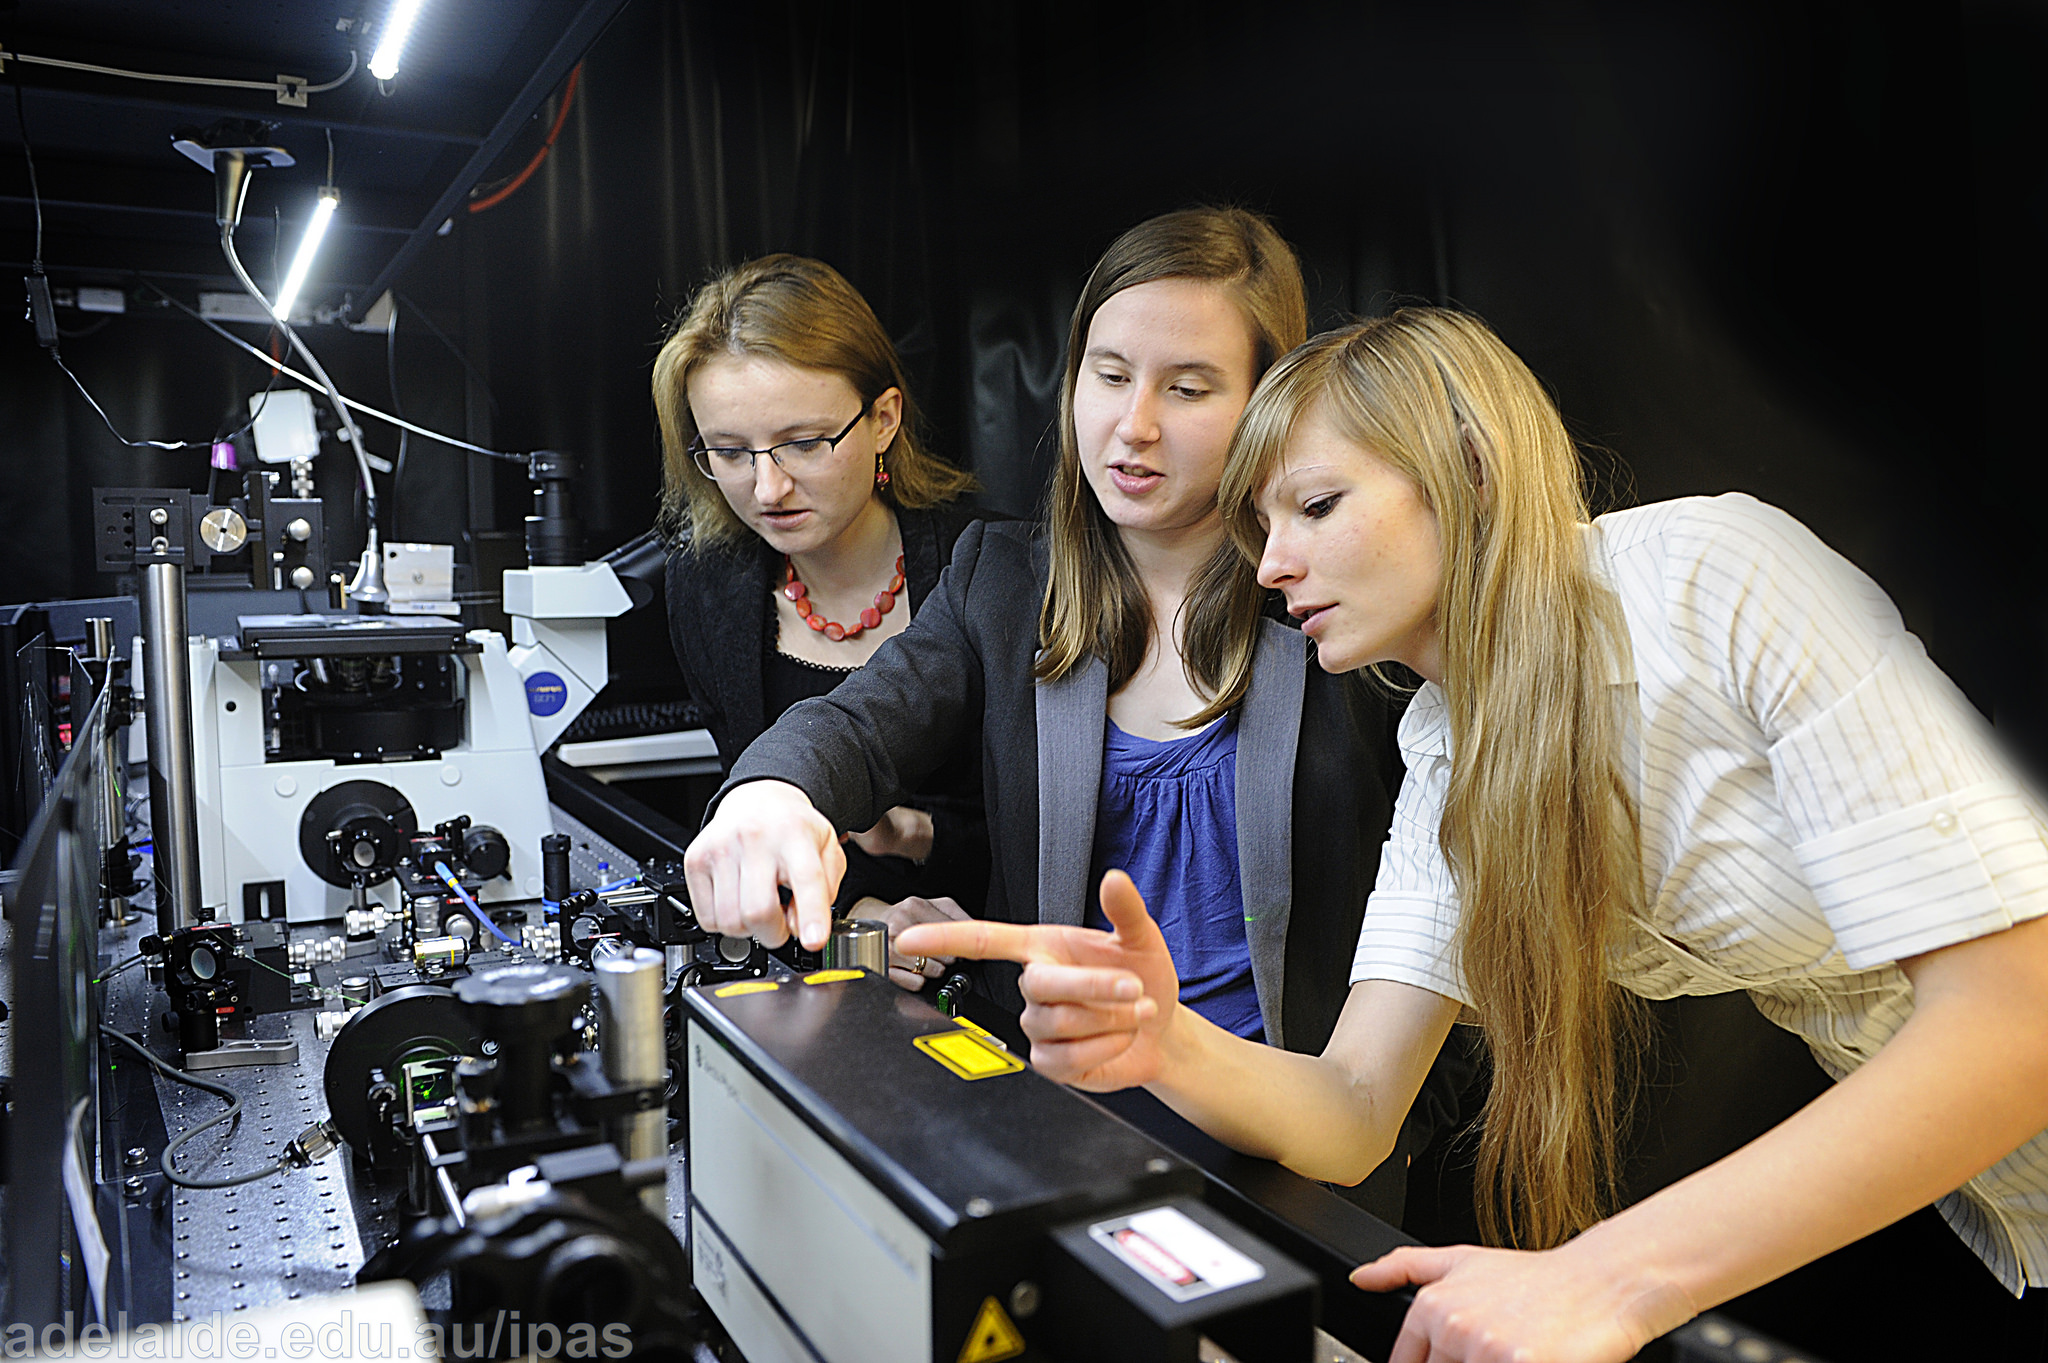 Featured image: Improving gender balance in physics